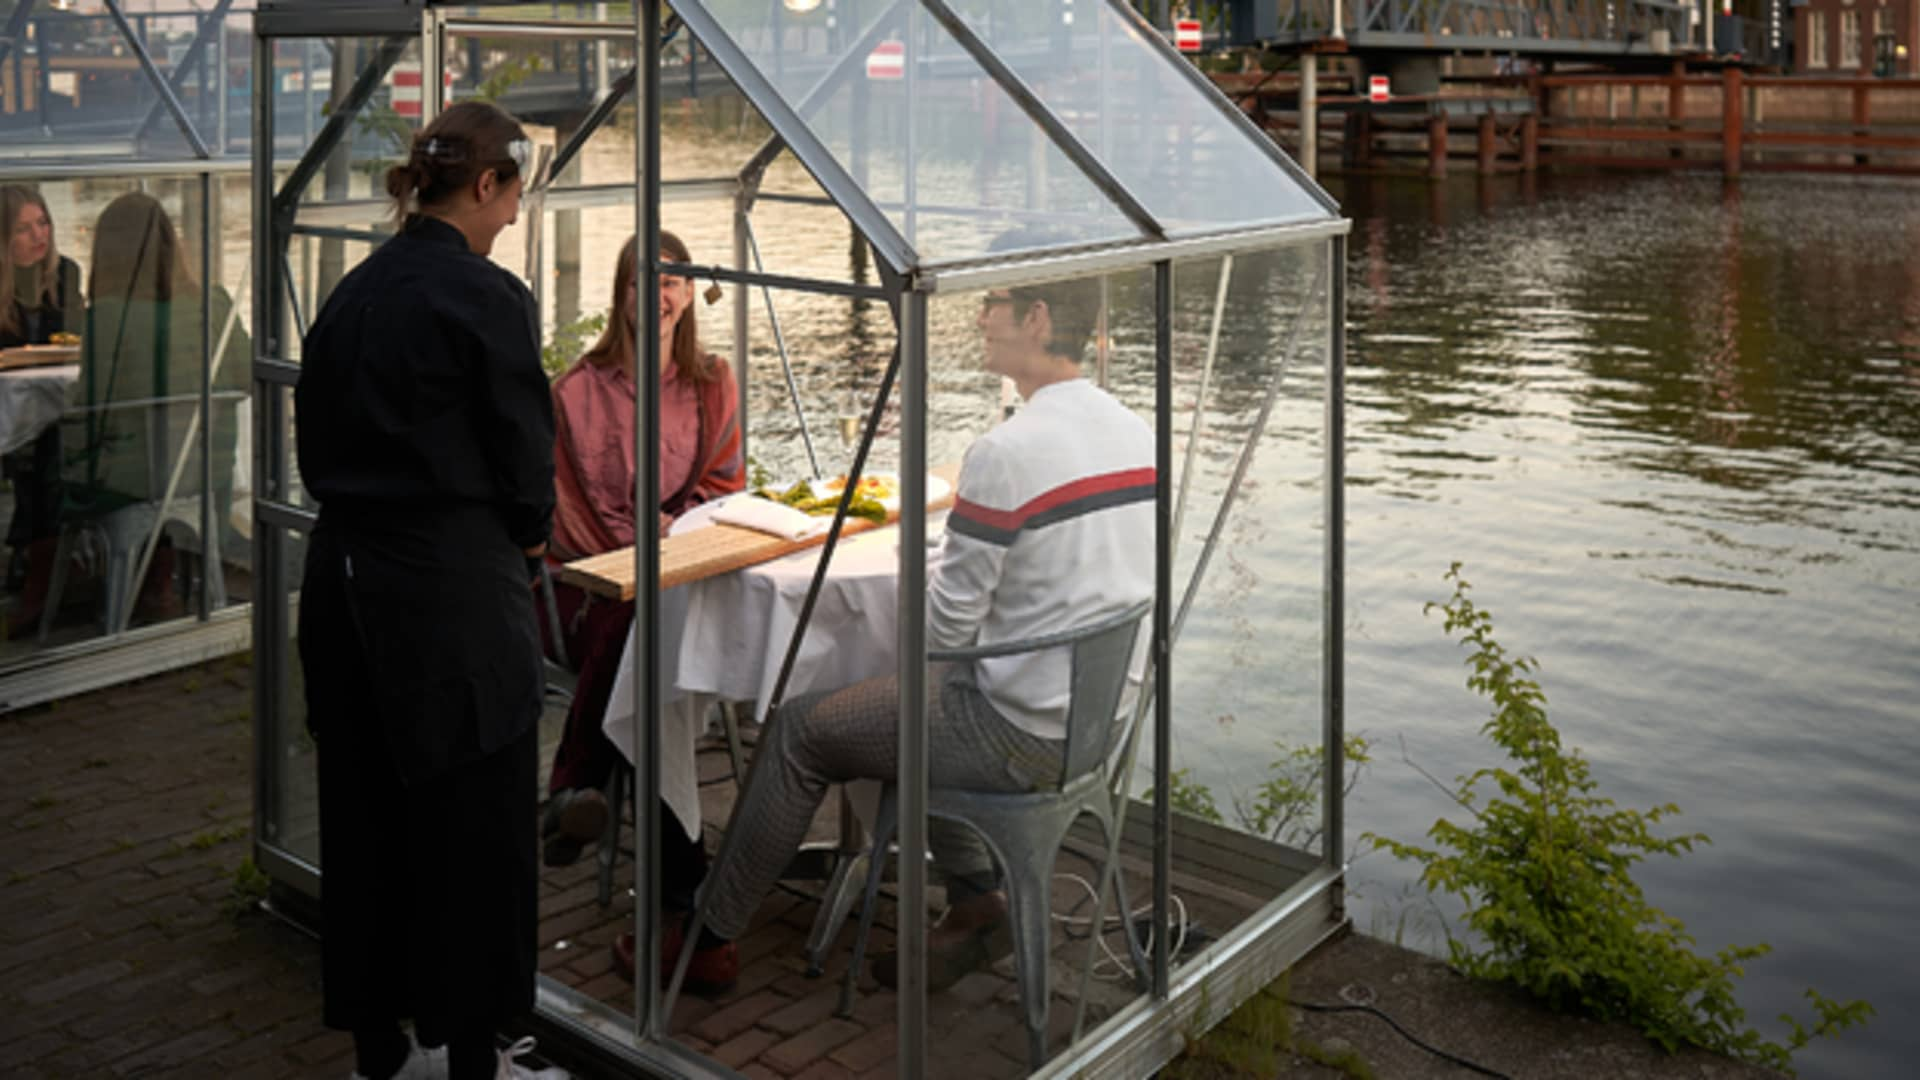 A server at Mediatic ETEN uses a wooden board to serve food to diners inside a greenhouse.